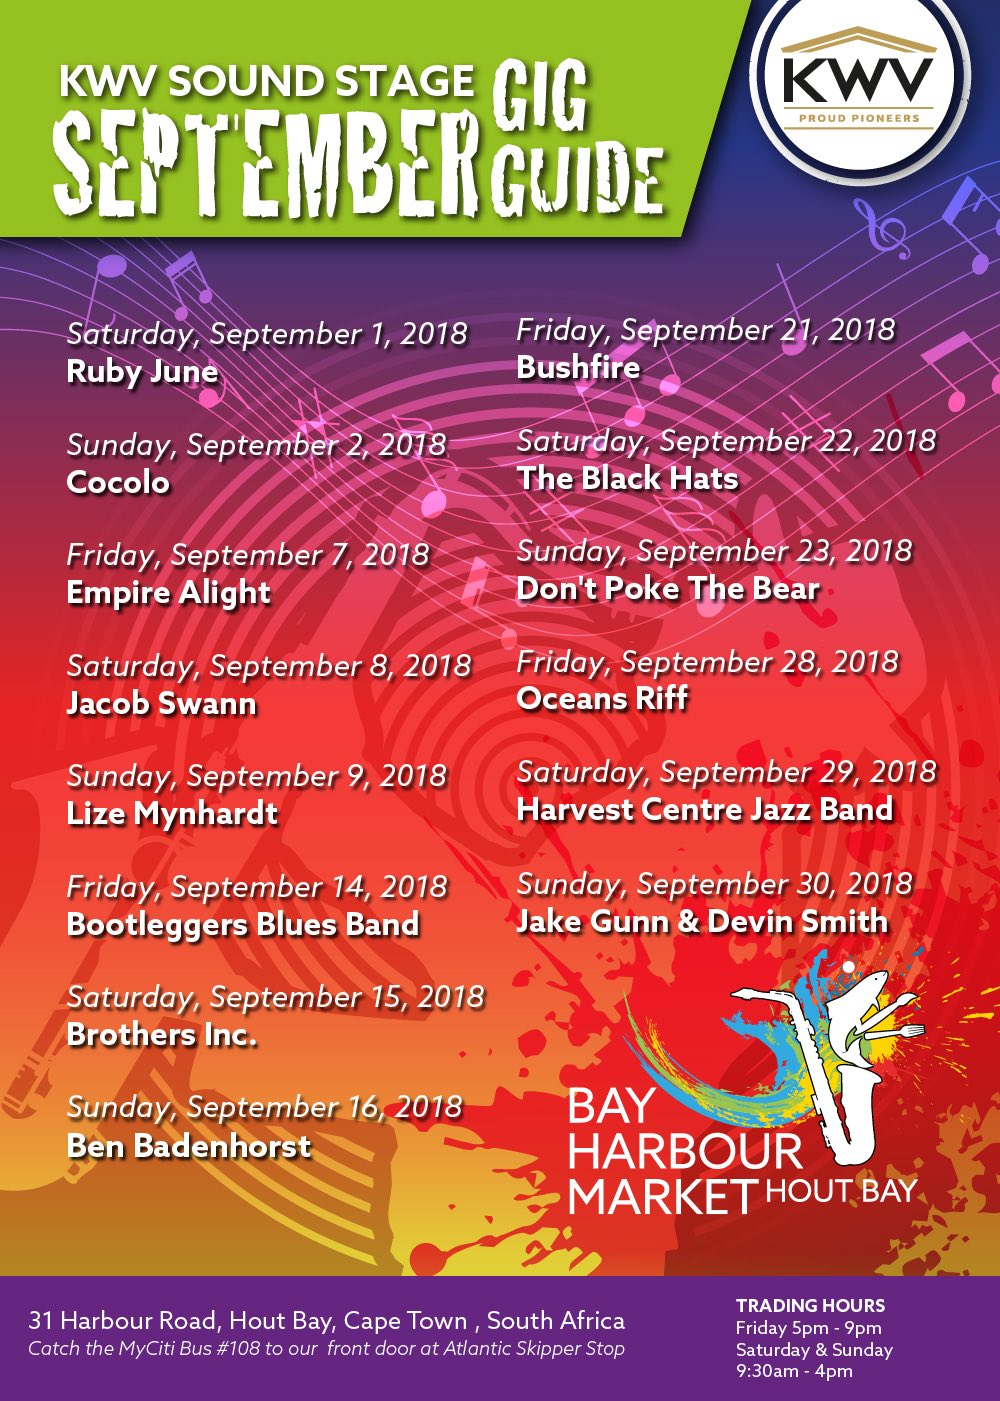 Hout Bay Harbour Market September Gig Guide